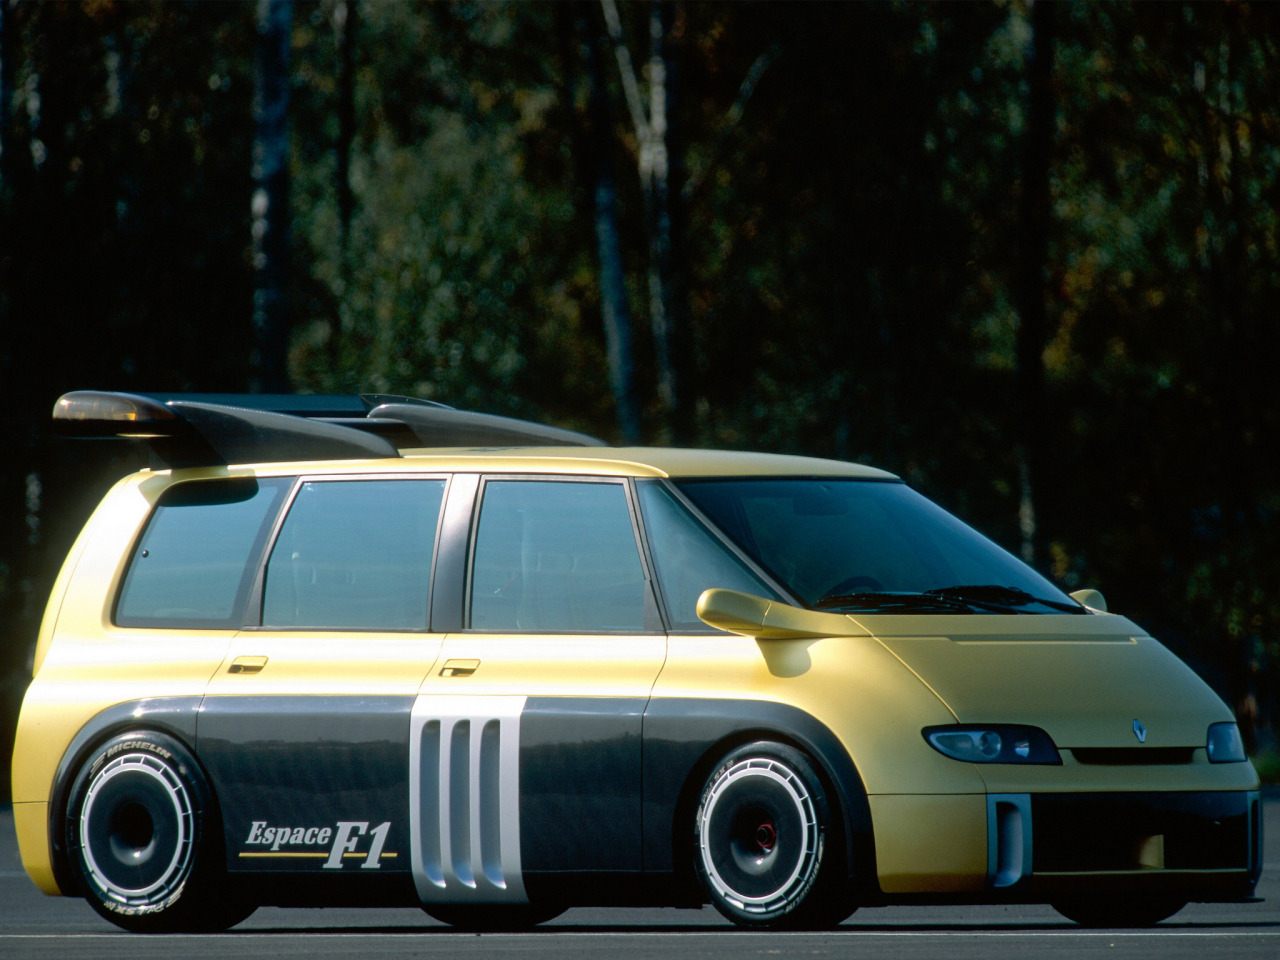 renault espace f1 tuning 4 tuning. Black Bedroom Furniture Sets. Home Design Ideas